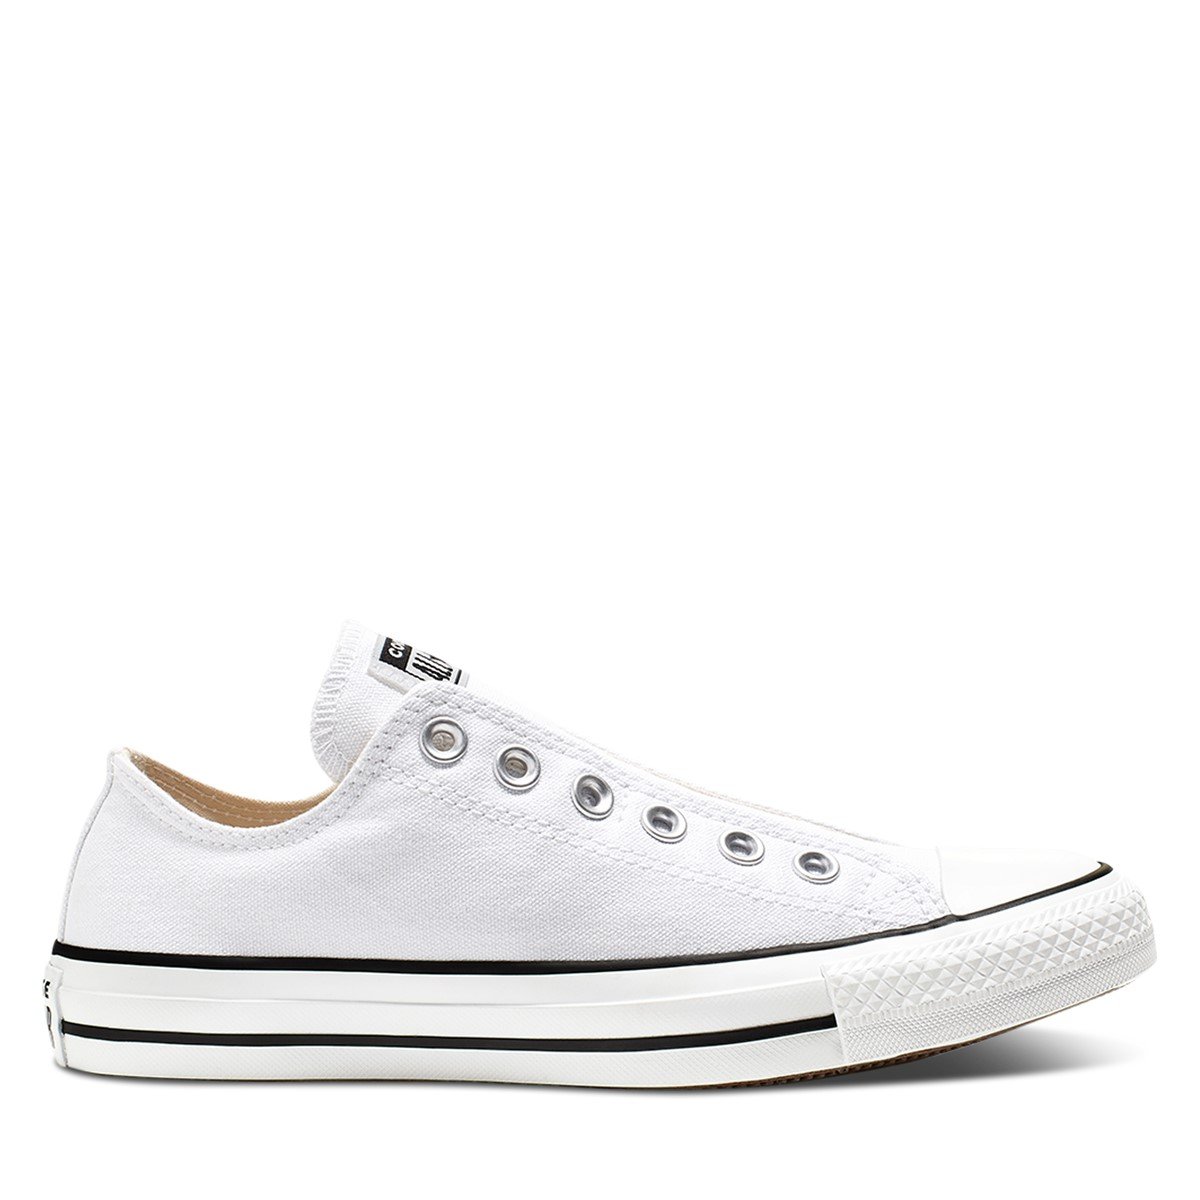 Men's Chuck Taylor All Star Slip Sneakers in White